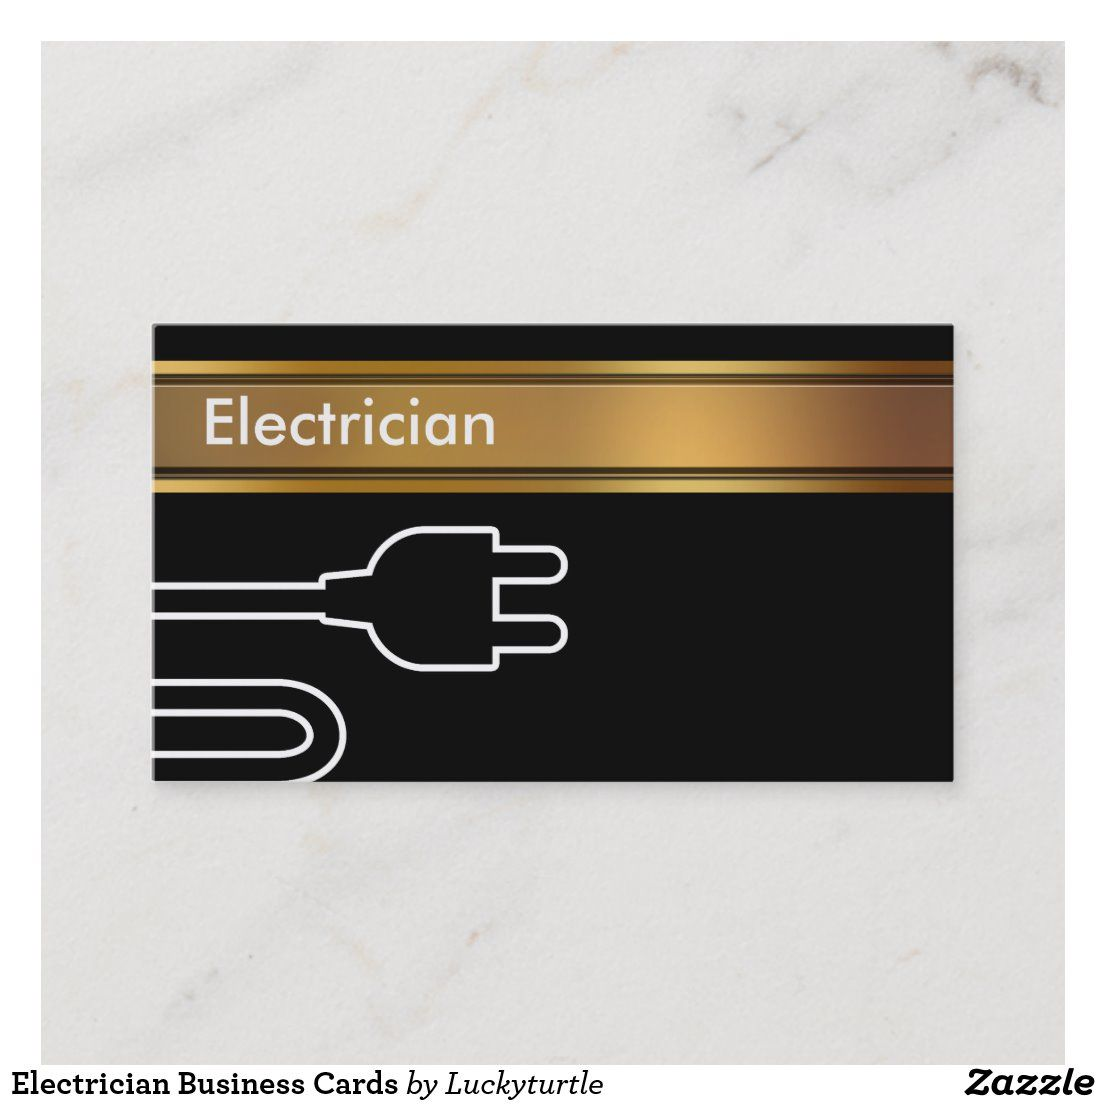 Electrician Business Cards Zazzle Com In 2021 Electrician Cards Business